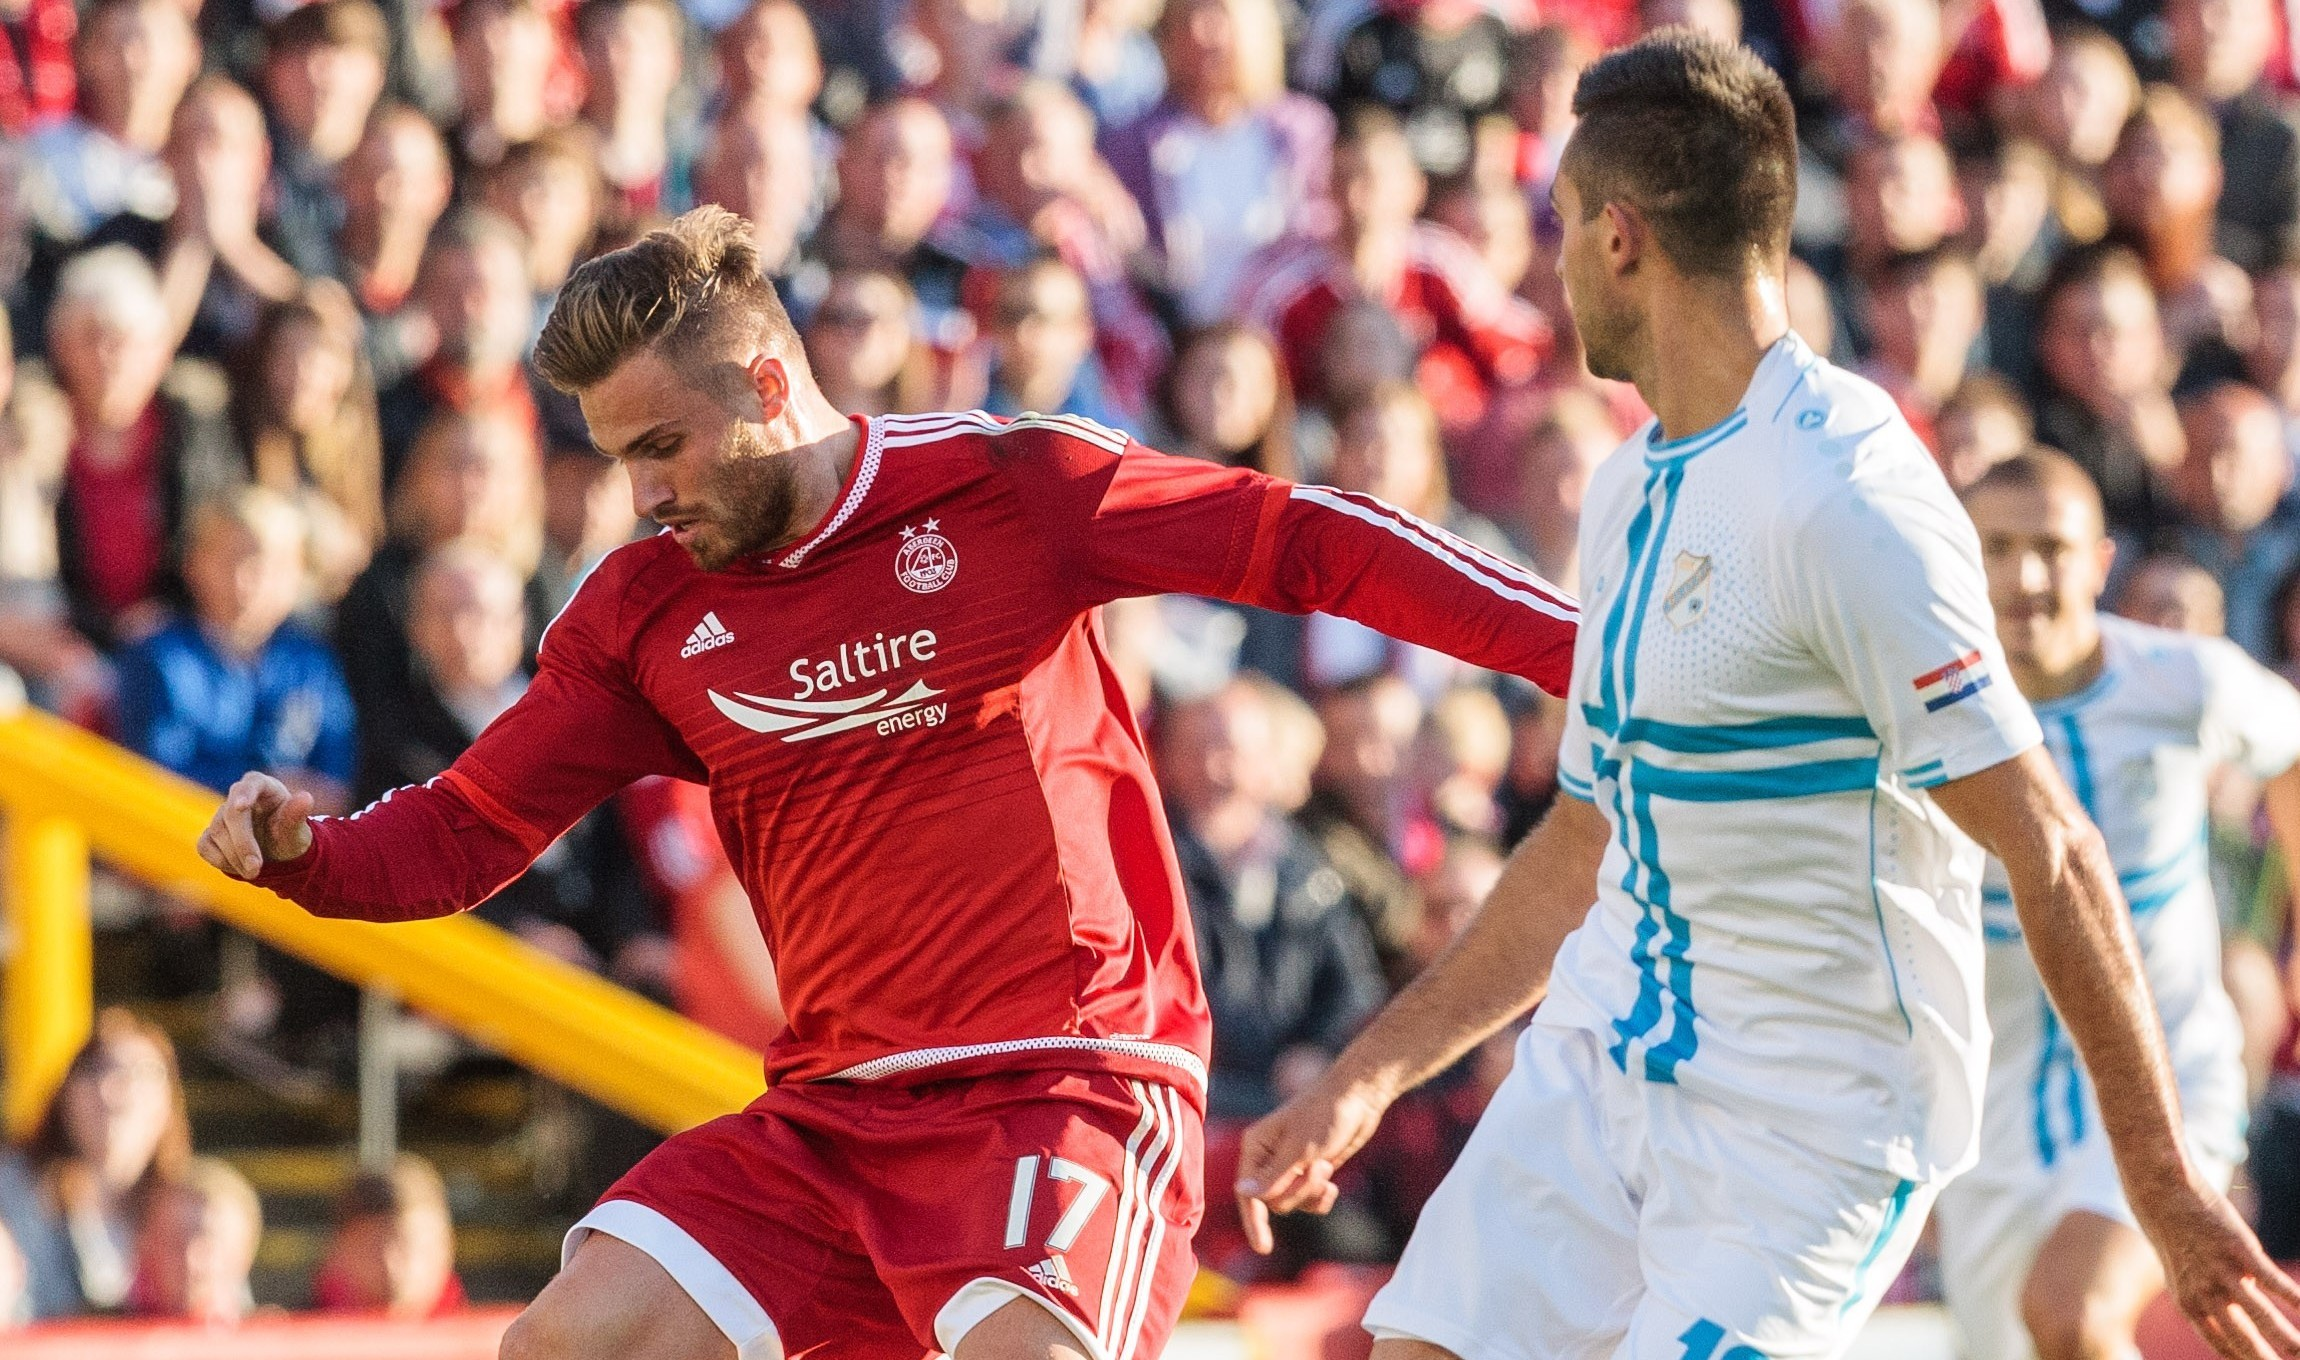 David Goodwillie  goes past a Rijeka player at  Pittodrie.